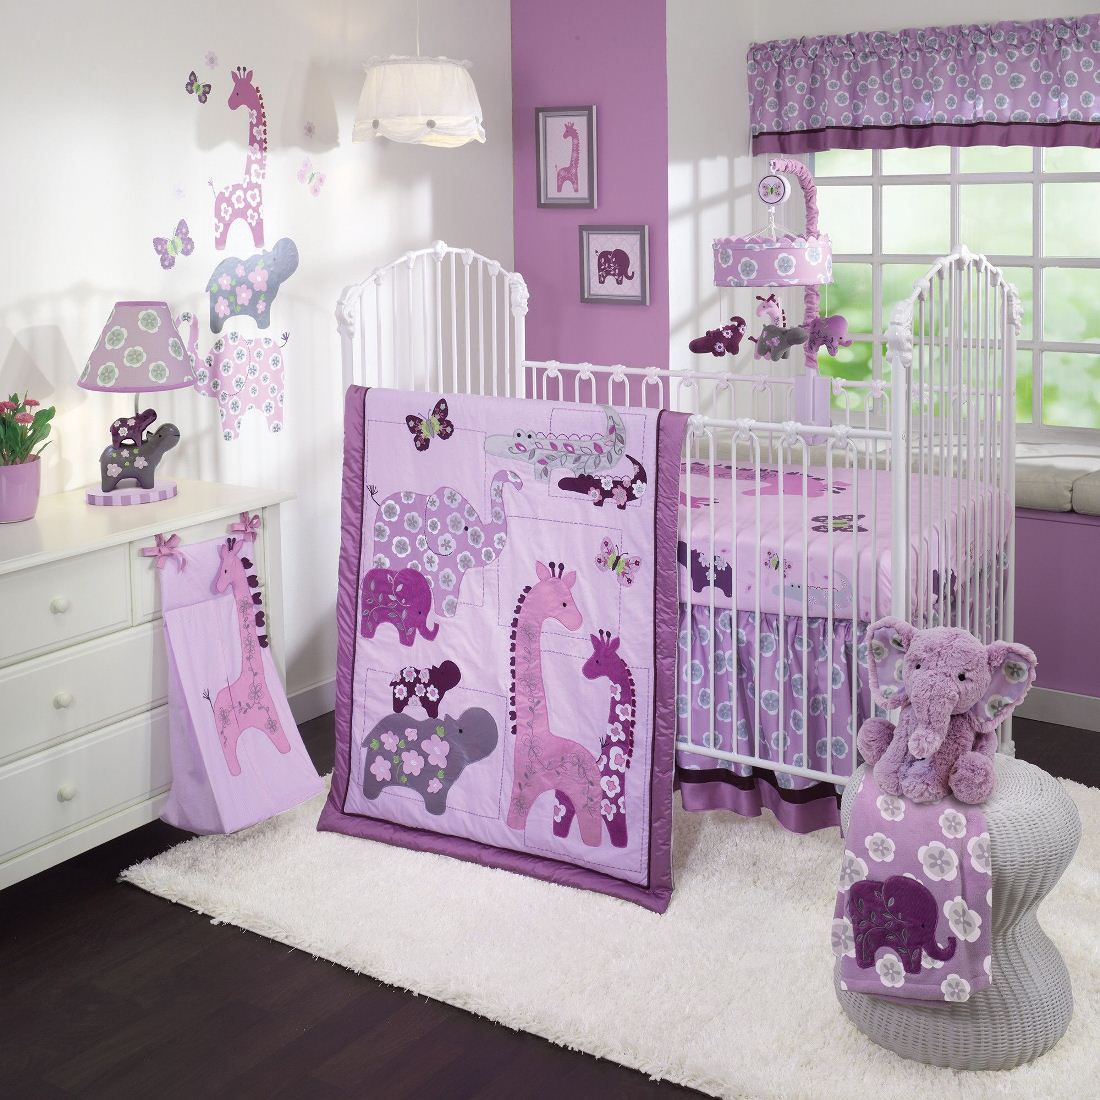 Baby Girl Themed Bedroom Ideas: Purple Baby Girl Nursery Decorating Ideas With Jungle